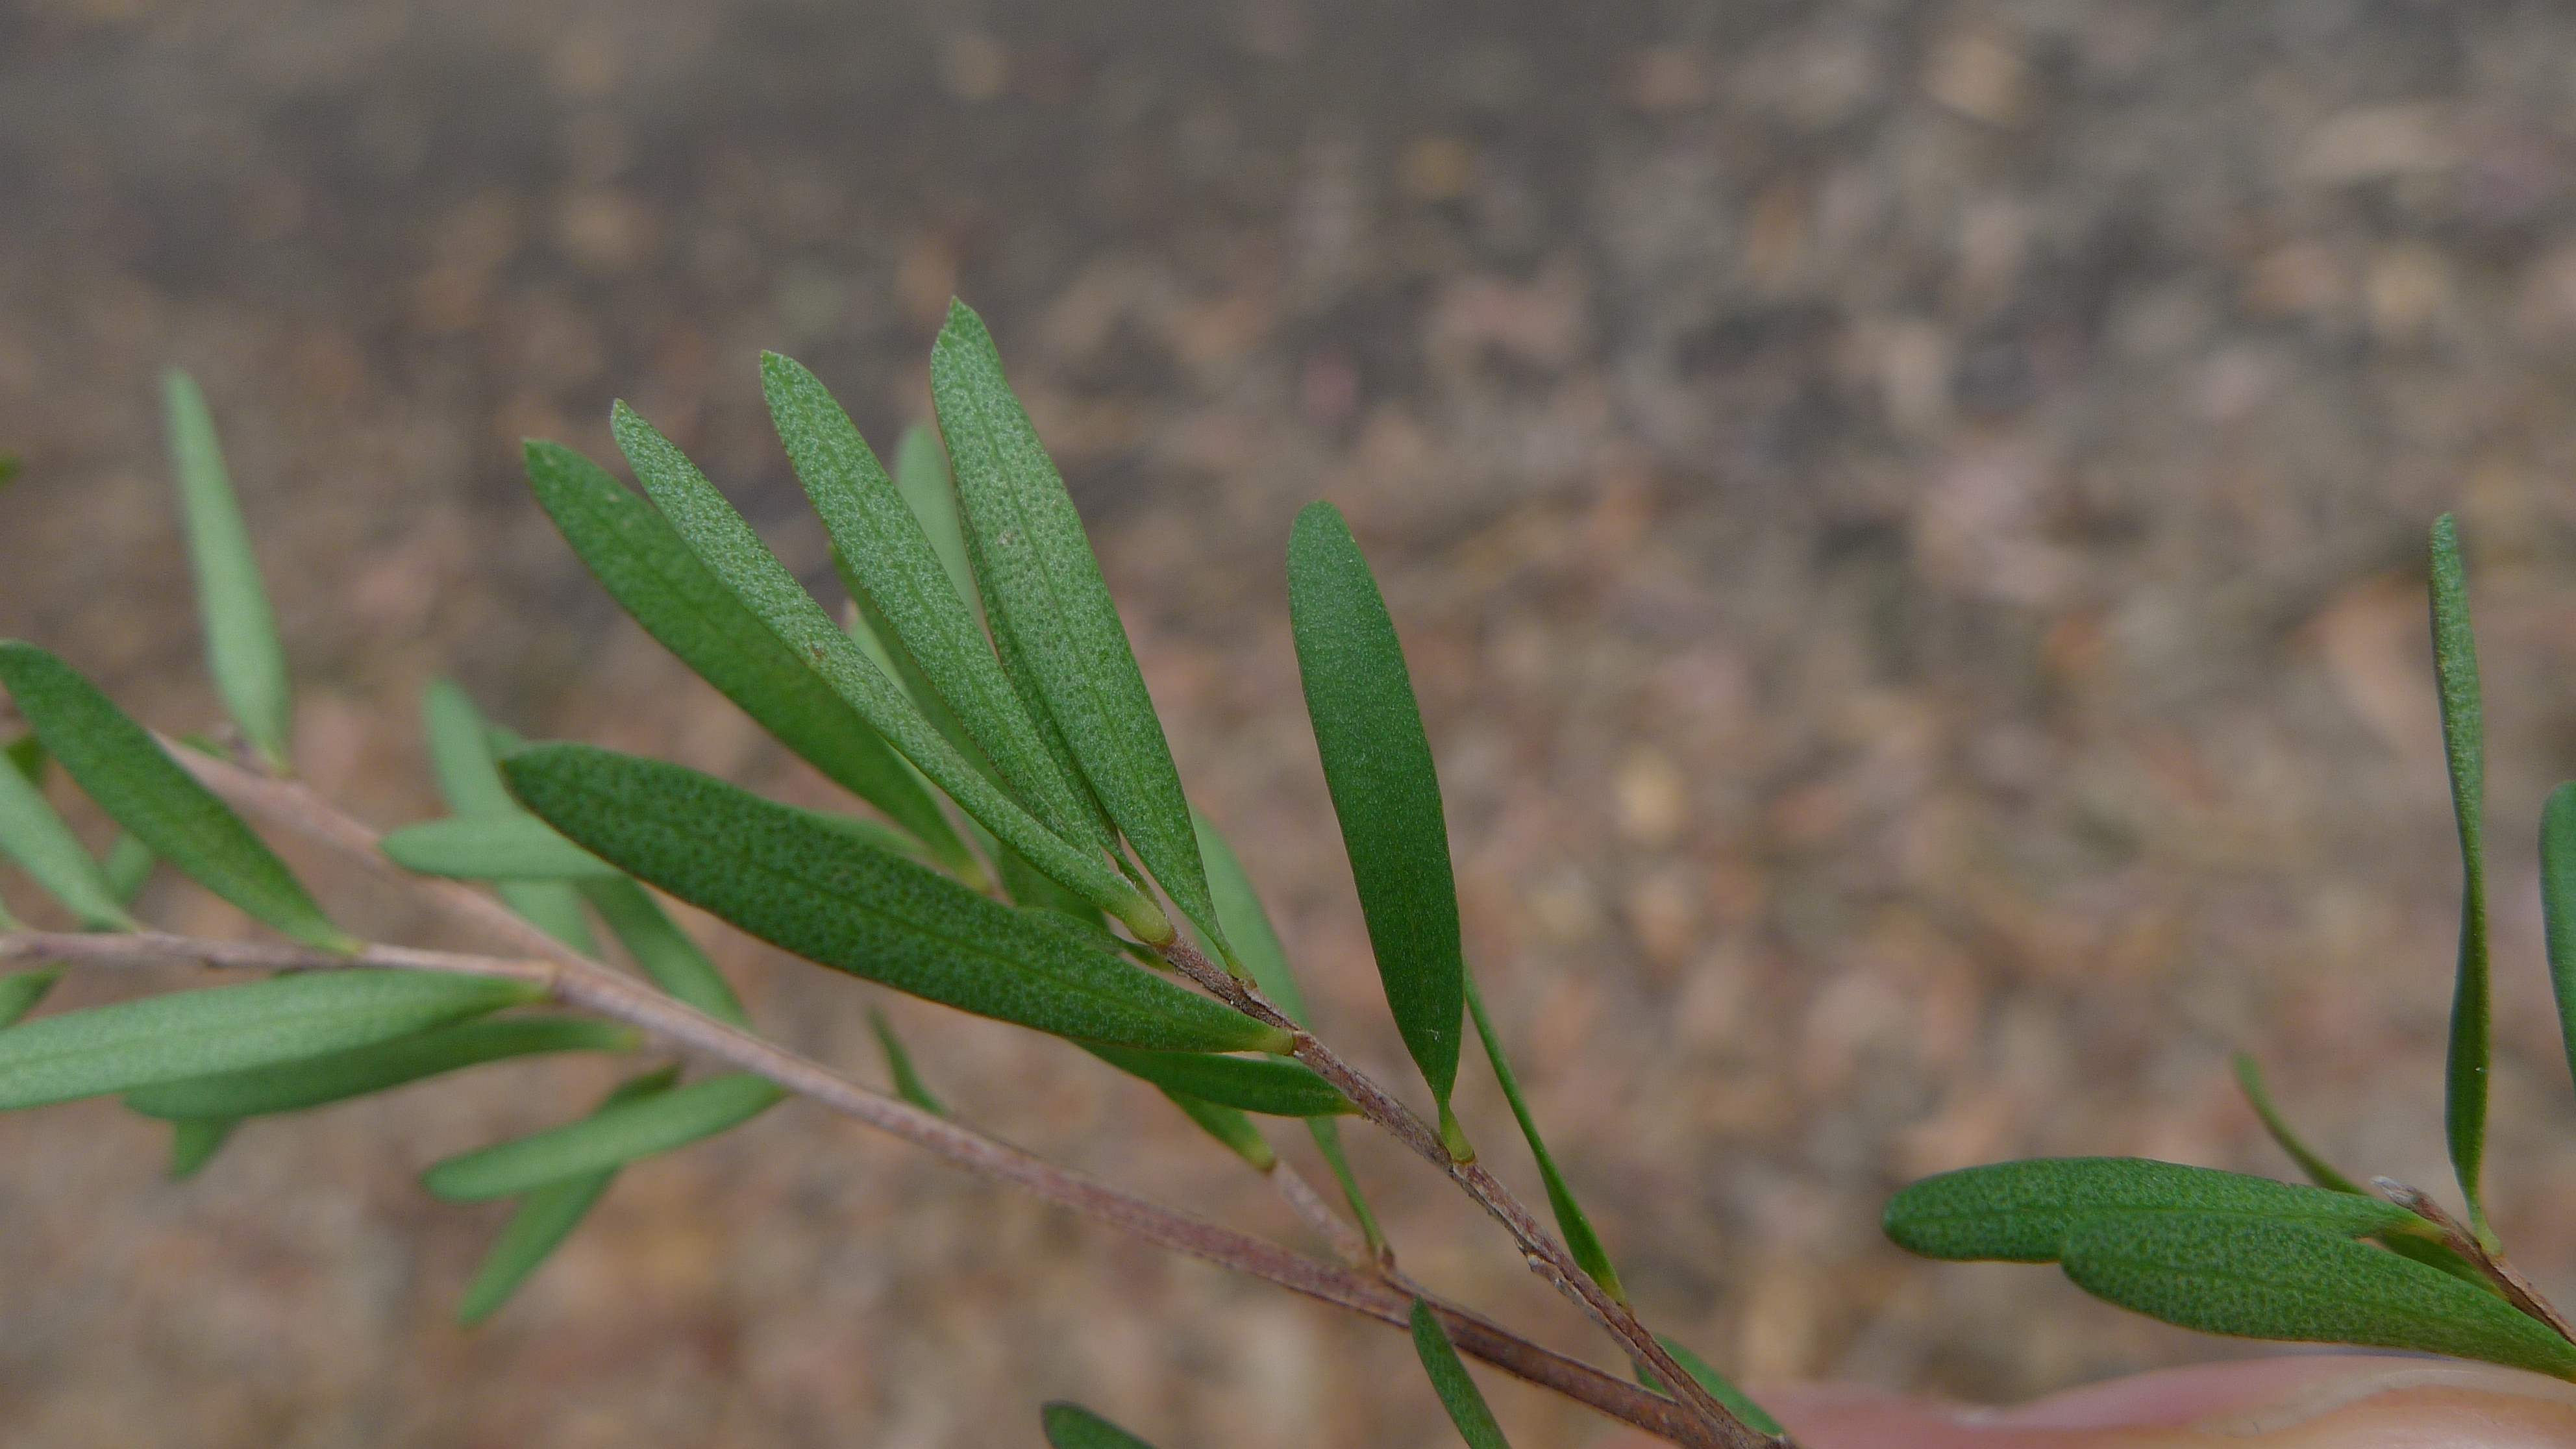 """Leptospermum polygalifolium leaves"" by John Tann is licensed under CC BY"